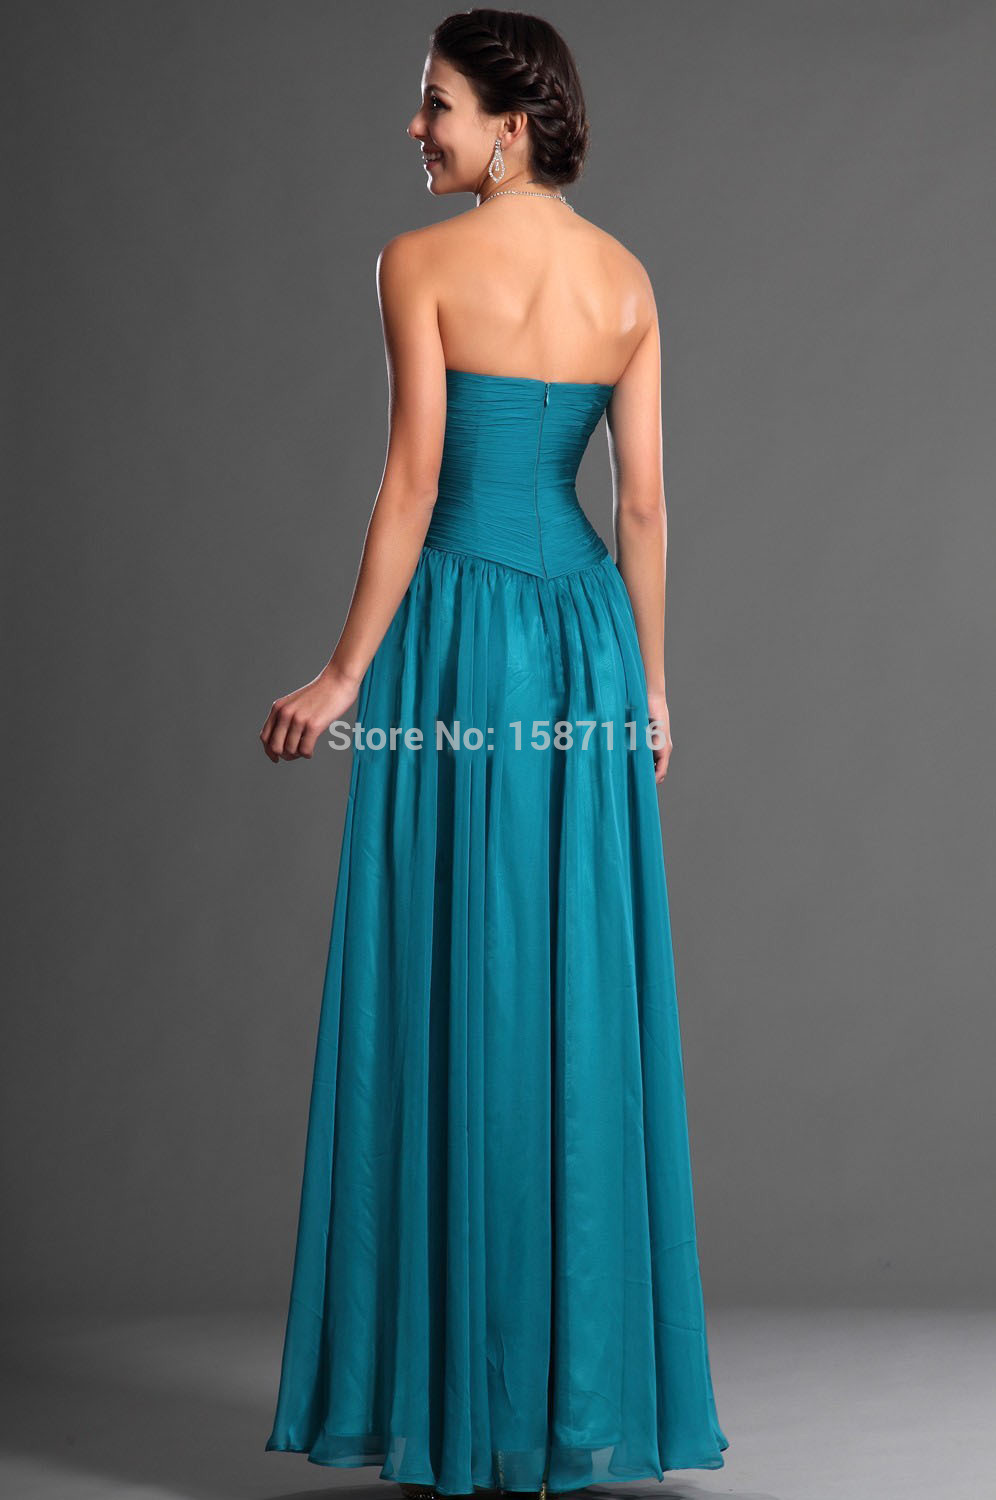 2015 custom high quality bridesmaid dress sweetheart long chiffon 2015 custom high quality bridesmaid dress sweetheart long chiffon turquoise bridesmaid dresses vestido turquesa mint dress in bridesmaid dresses from ombrellifo Image collections